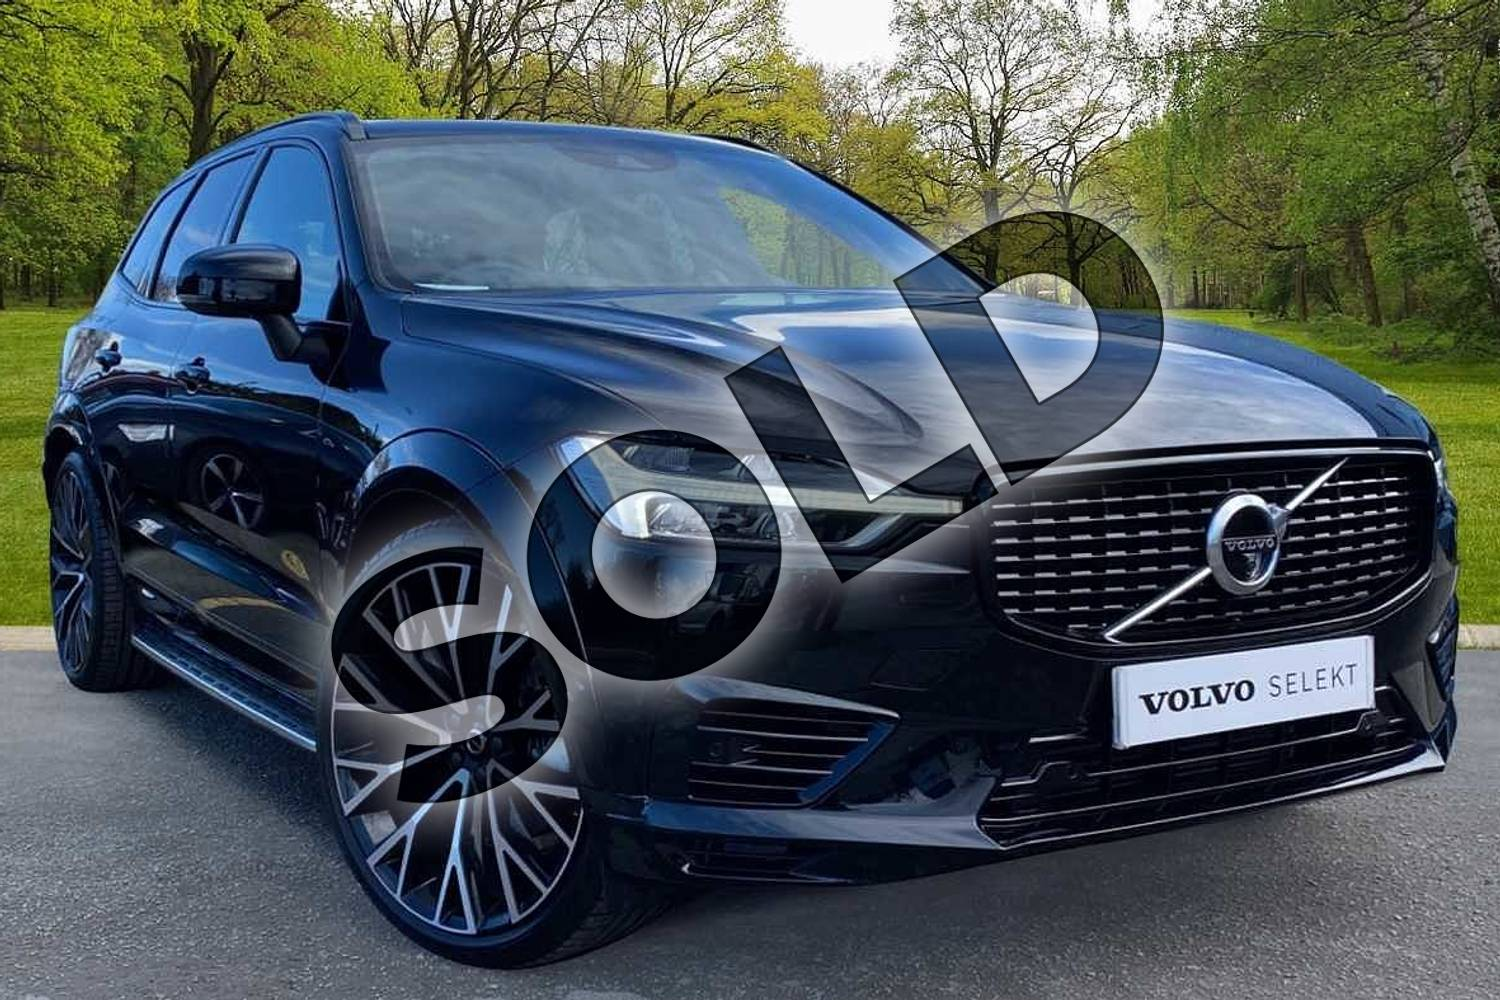 2021 Volvo XC60 Estate 2.0 T8 Recharge PHEV R DESIGN Pro 5dr AWD Auto in Onyx Black at Listers Volvo Worcester